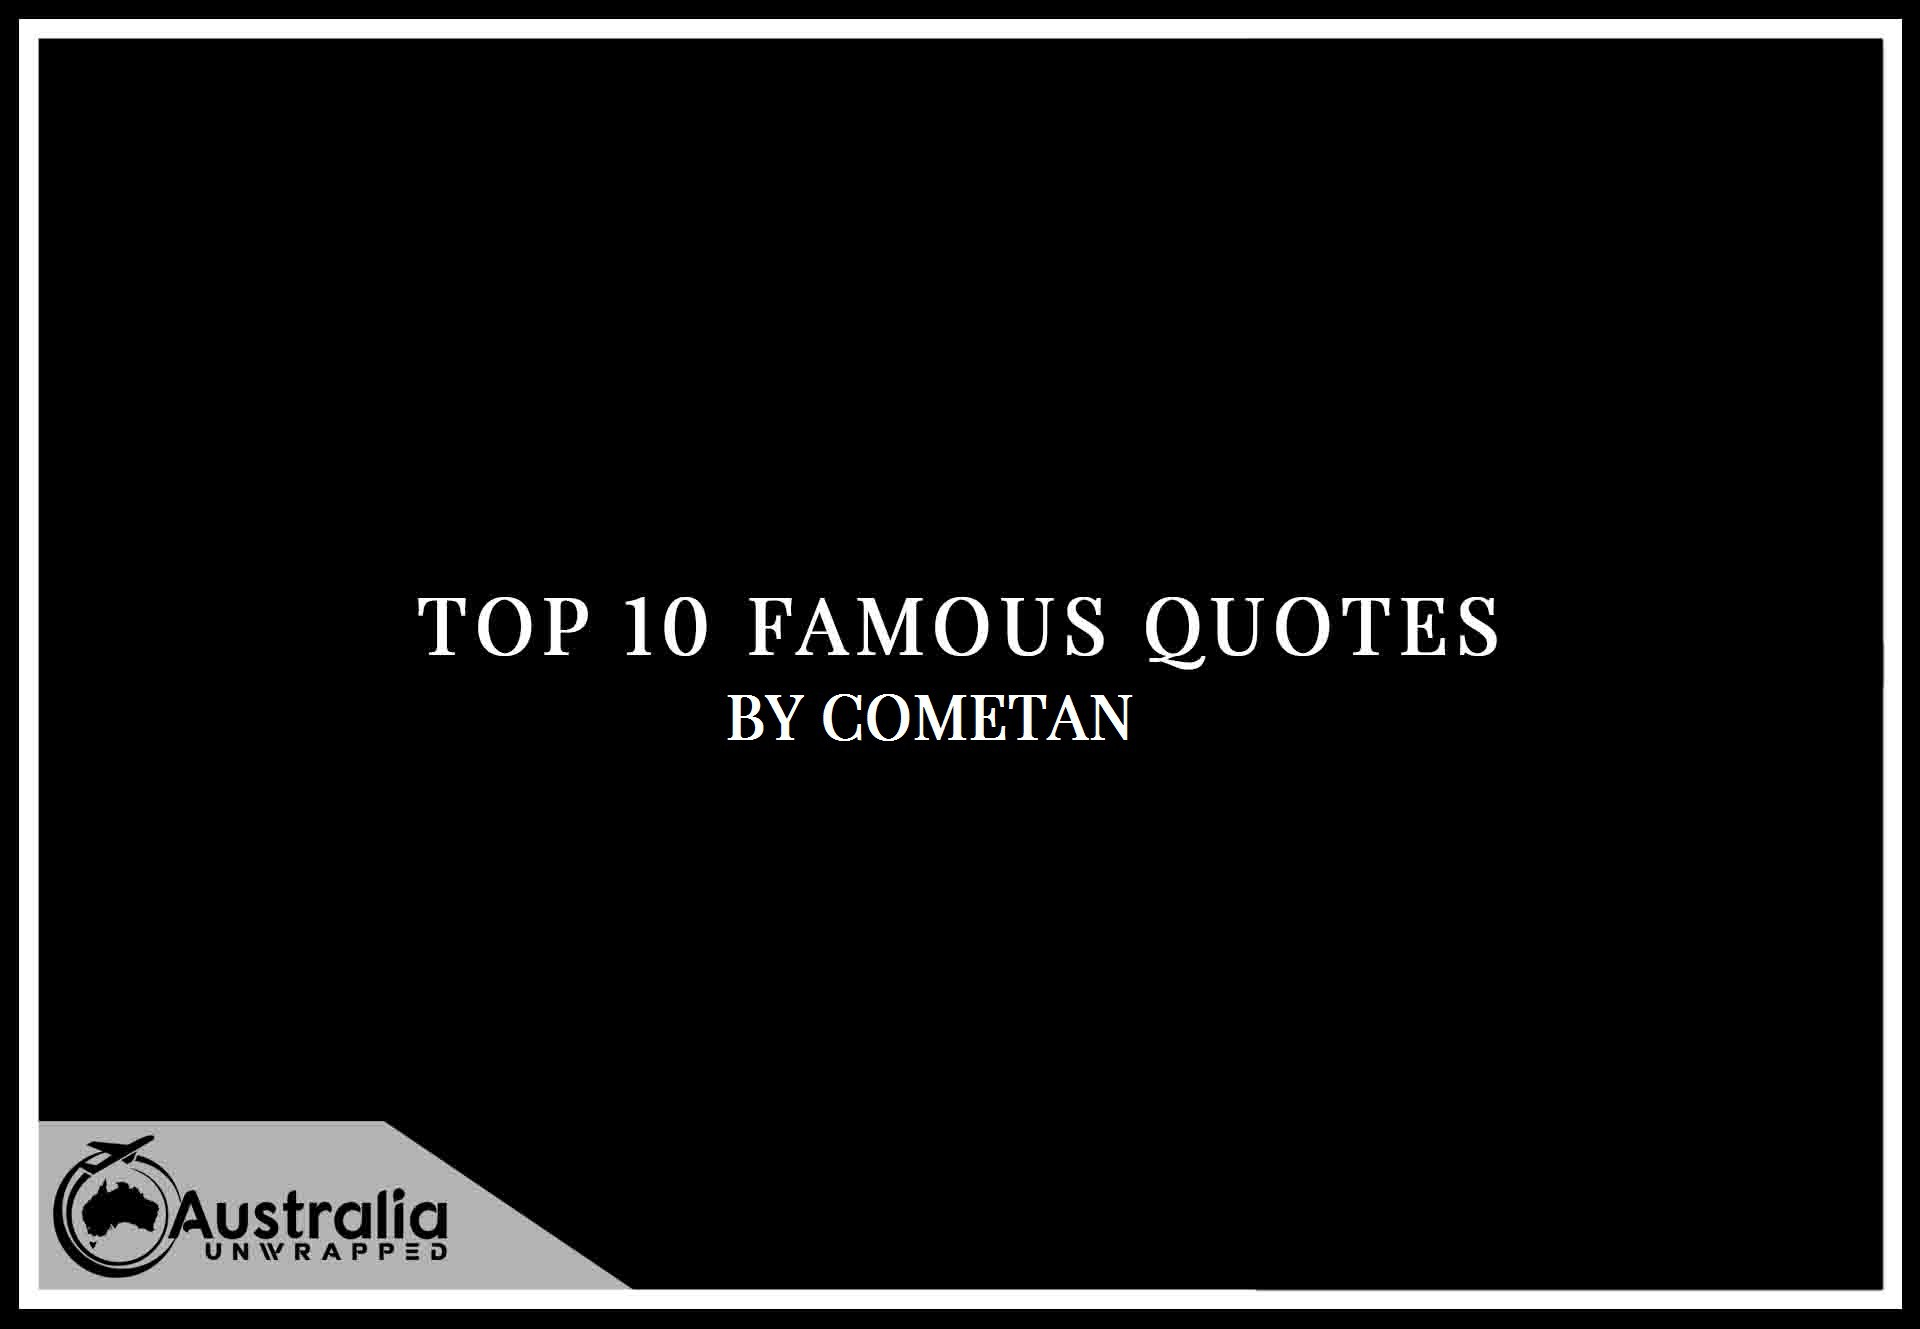 Cometan's Top 10 Popular and Famous Quotes